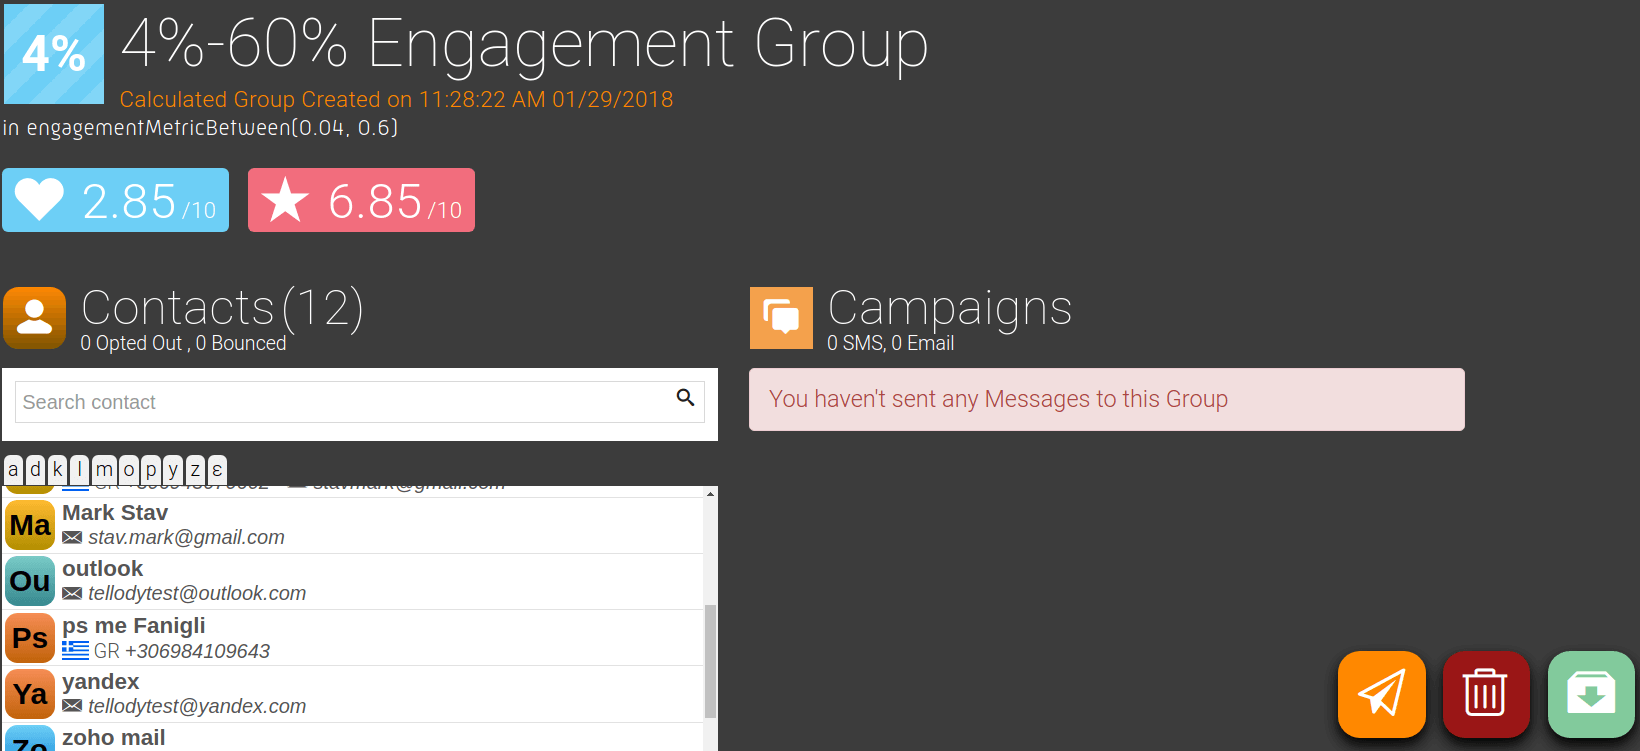 Engagement Dynamic Group Details